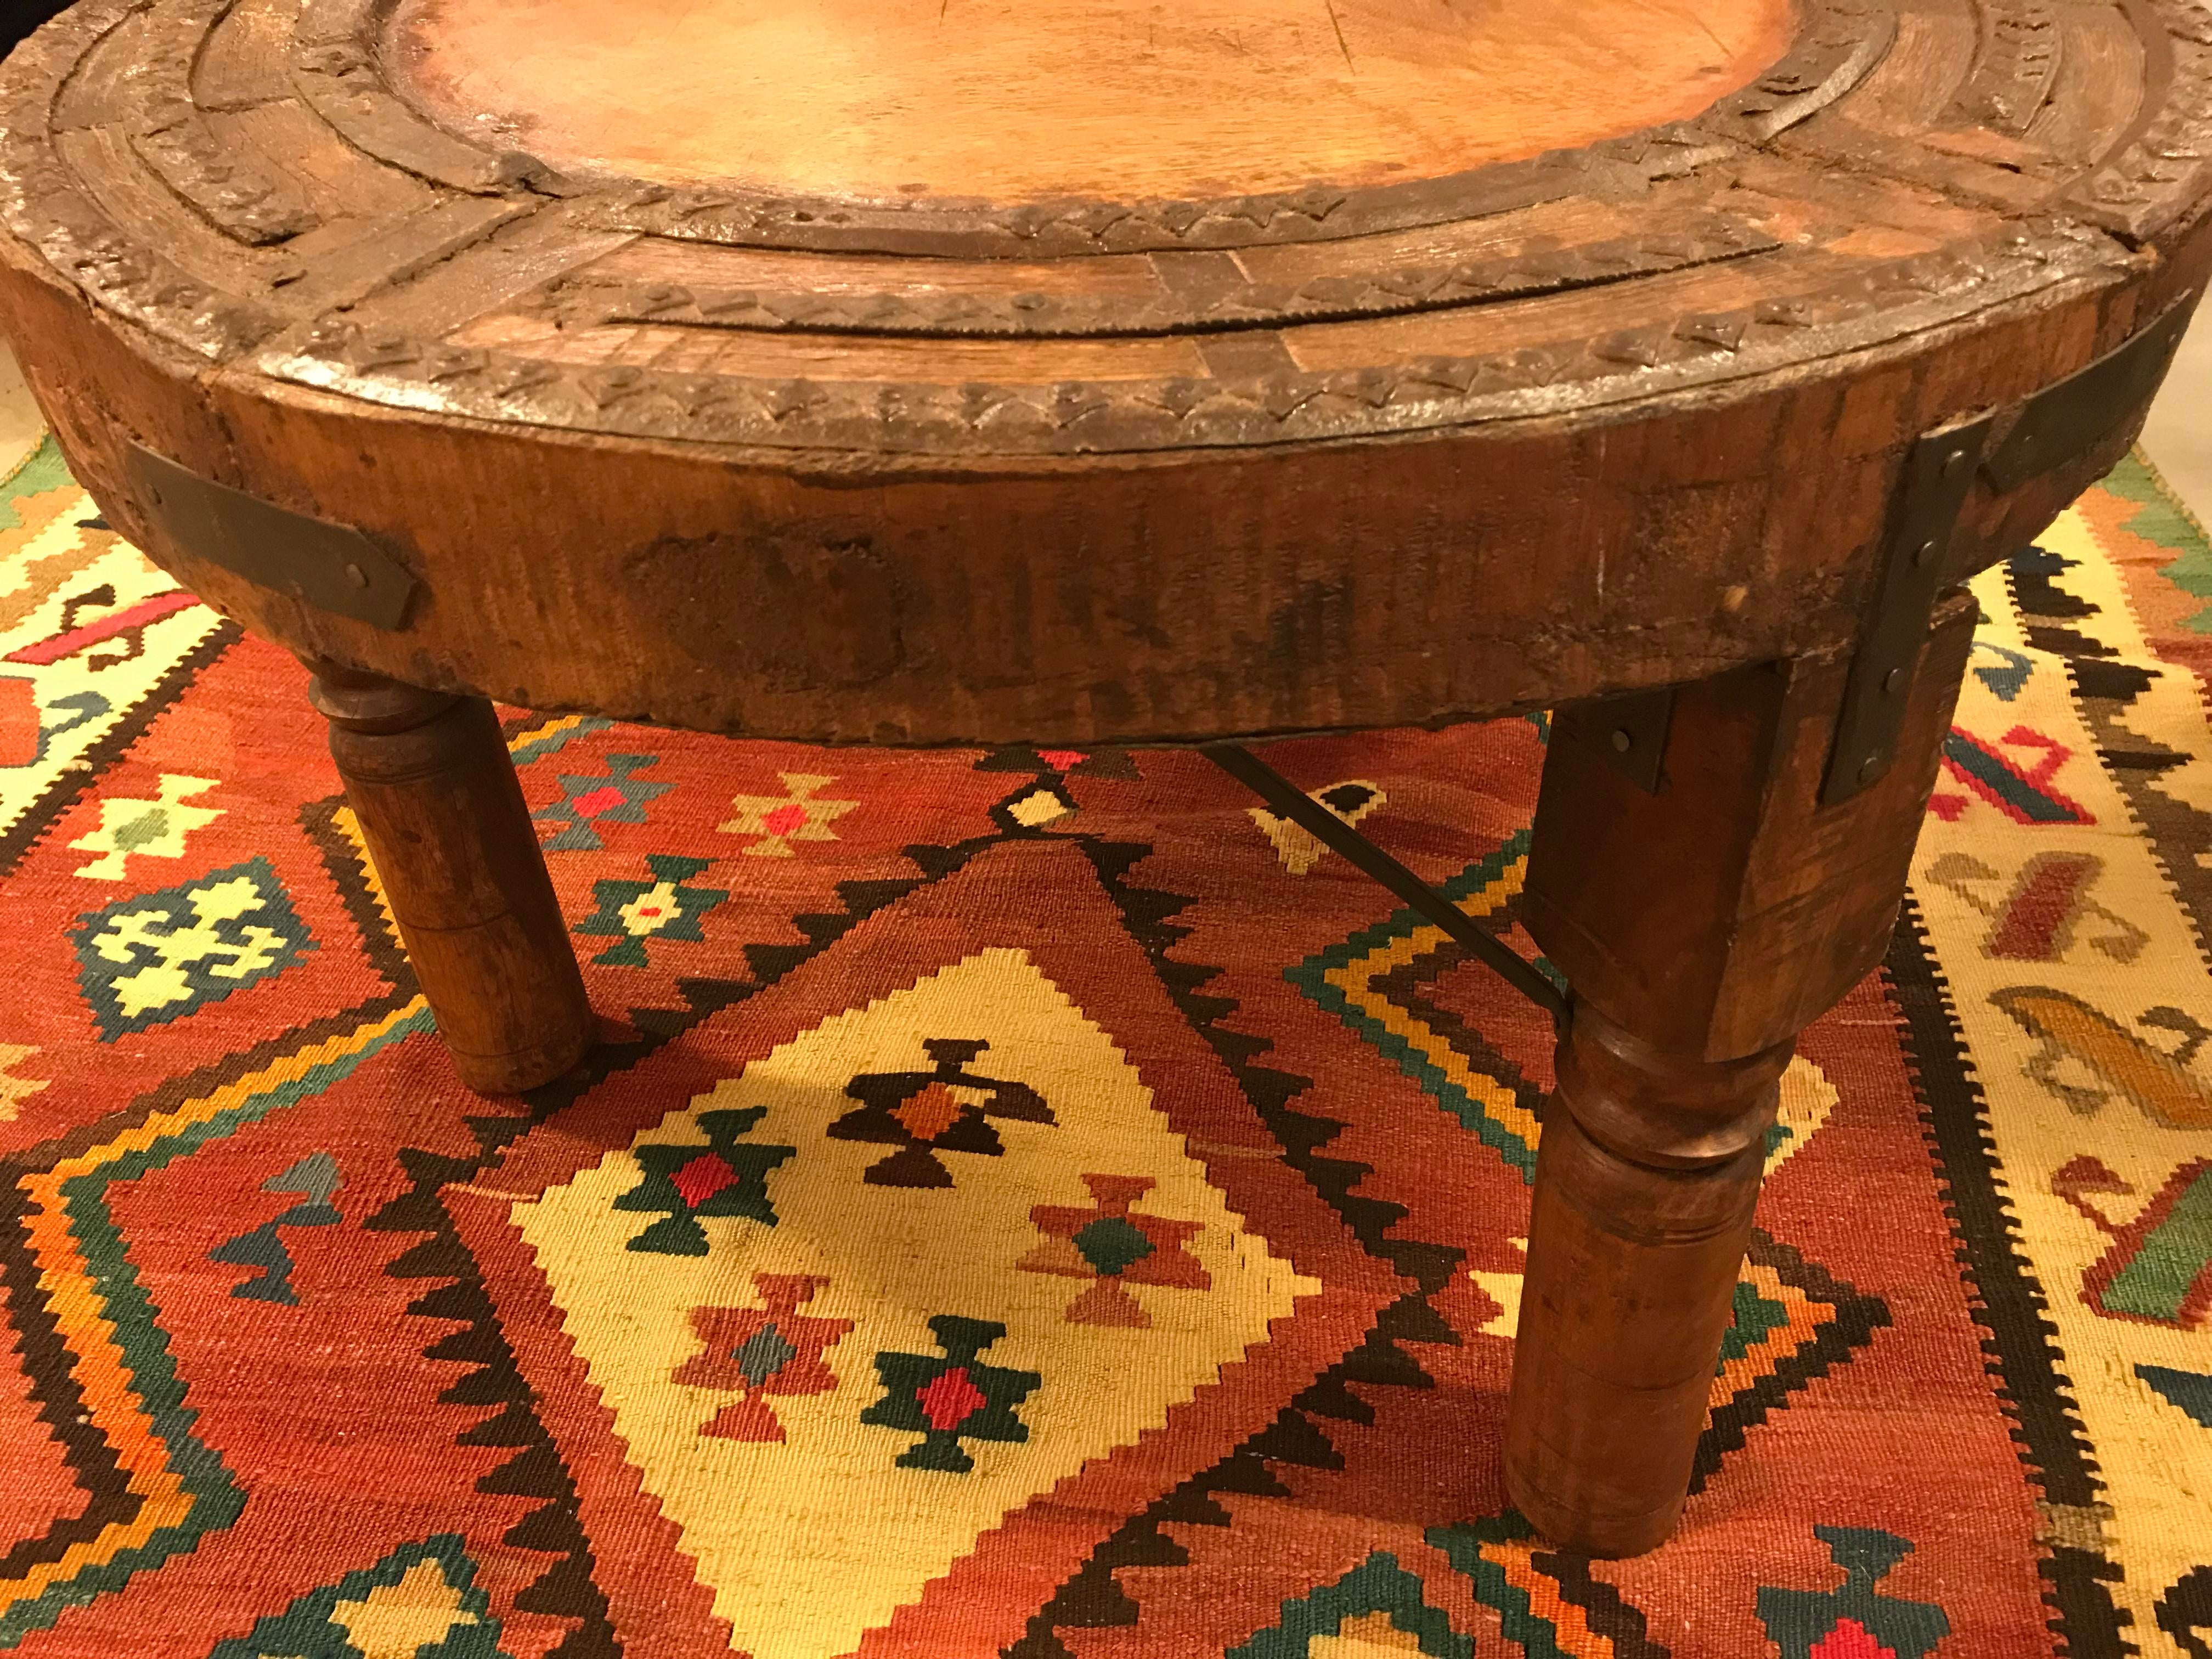 Antique Indonesian Wagon Wheel, Made Into A Side Table, Medium For Sale In  Miami